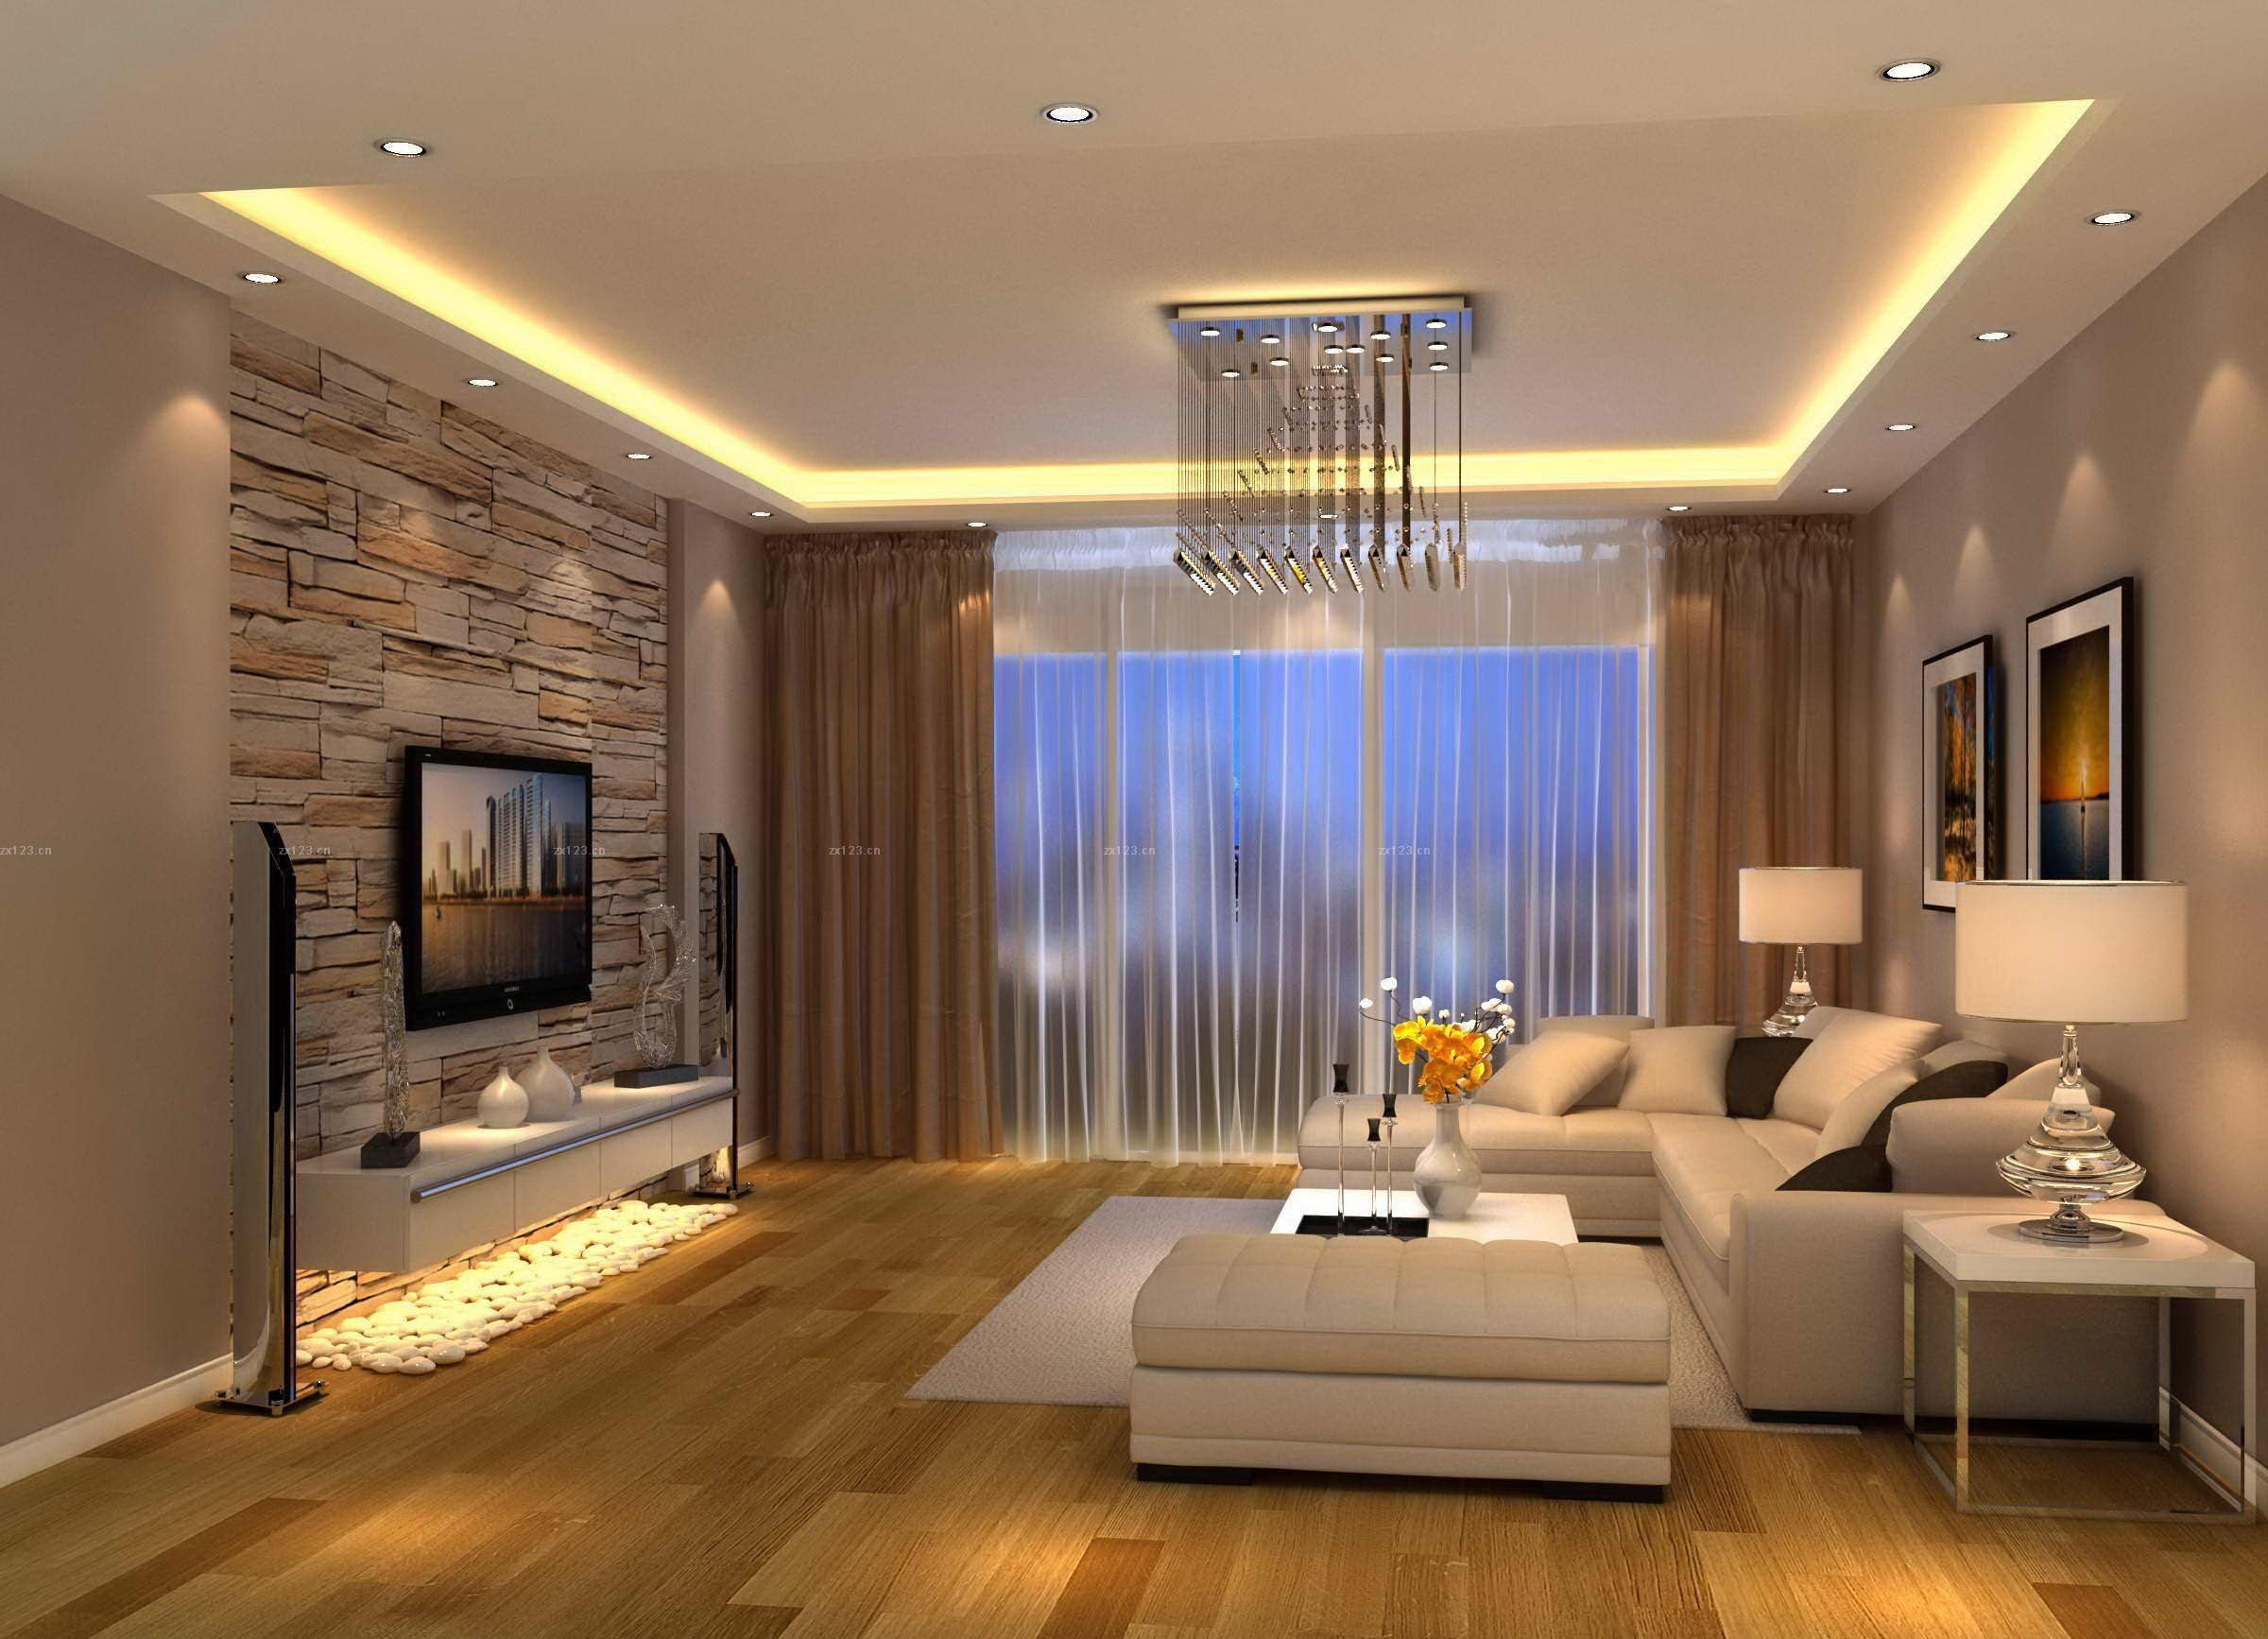 Further design curtain designs for modern living room 2017 of modern - Room Modern Living Room Brown Design More